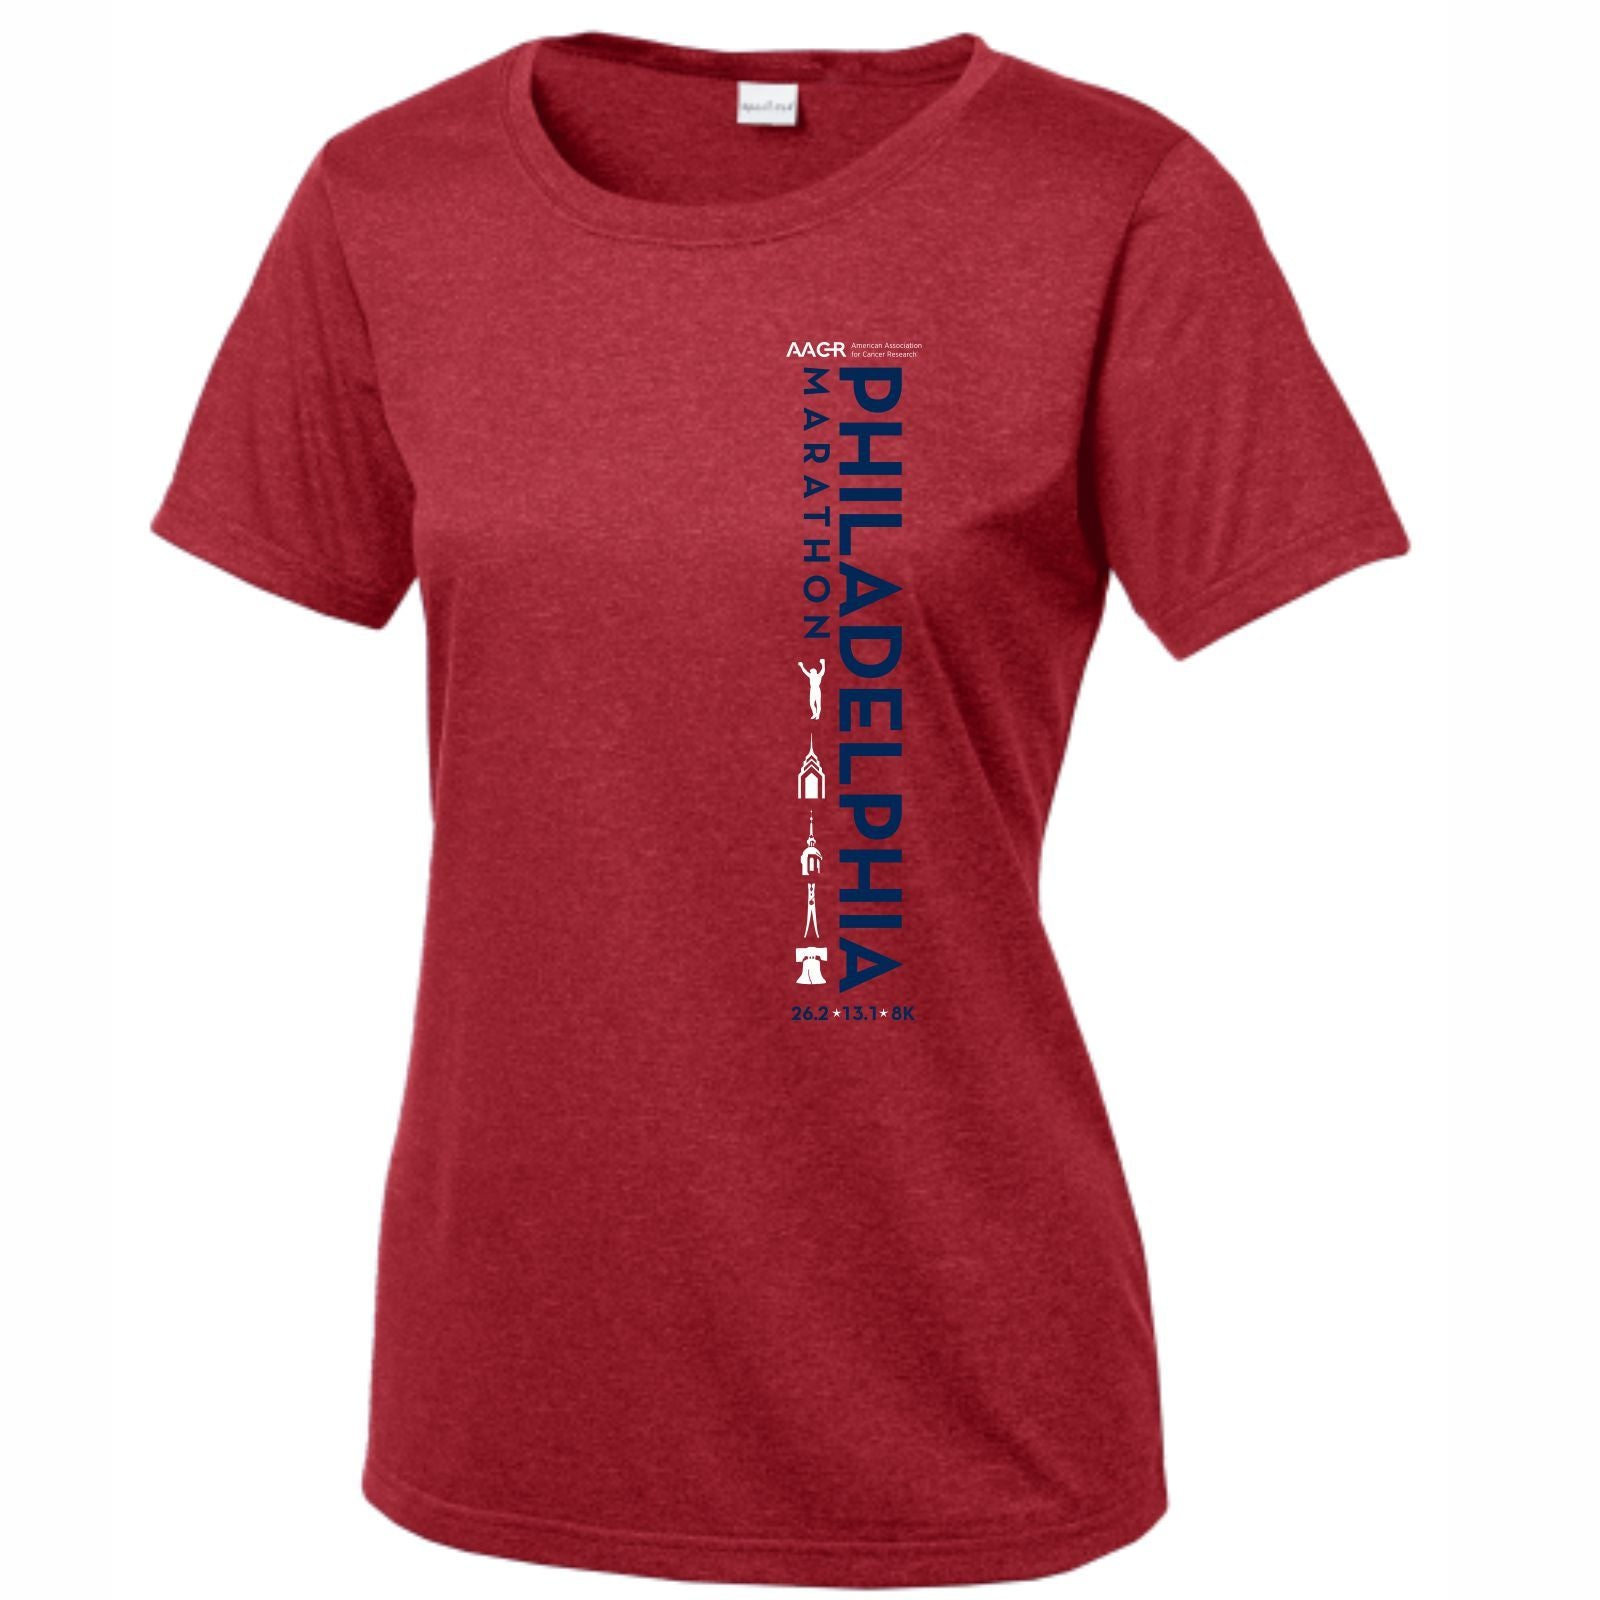 AACR Philadelphia Marathon 'Left Chest Print Vertical' Women's SS Tech Scoop Neck Tee - Scarlet Heather